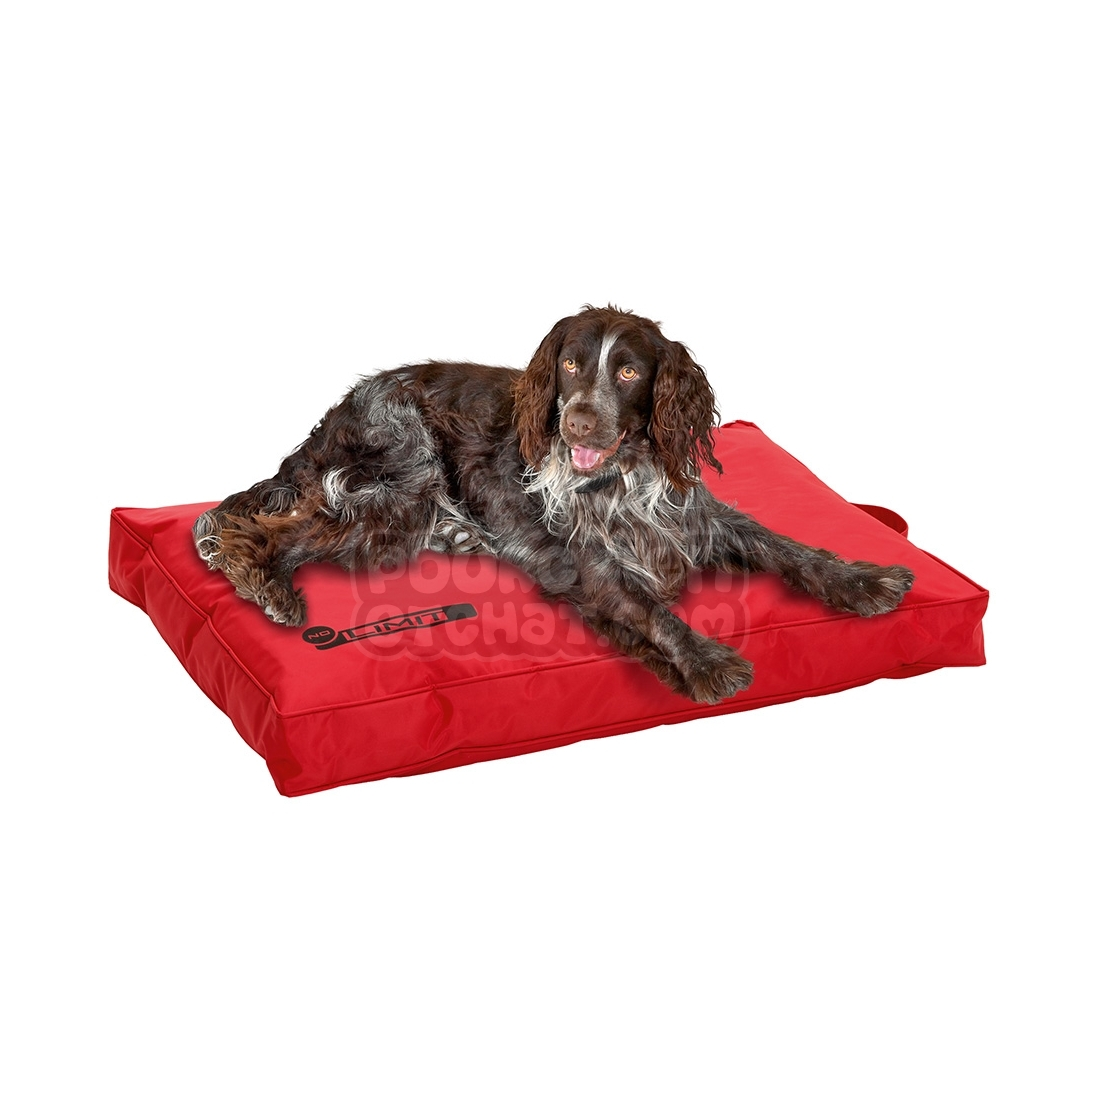 coussin pour chien no limit rouge. Black Bedroom Furniture Sets. Home Design Ideas